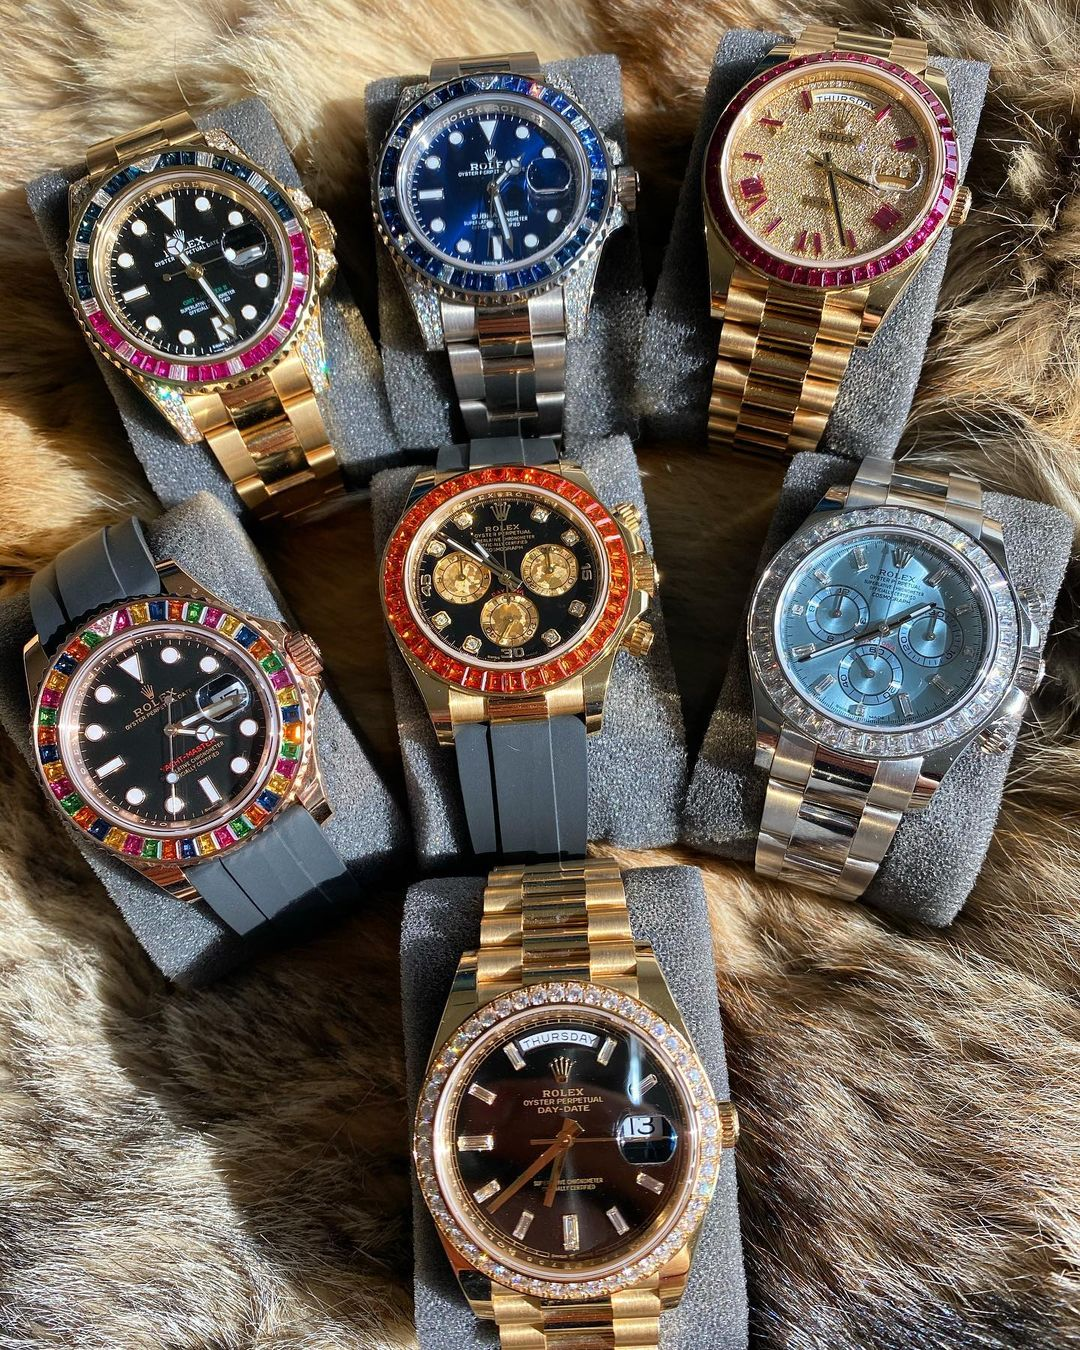 collection of jeweled Rolex watches